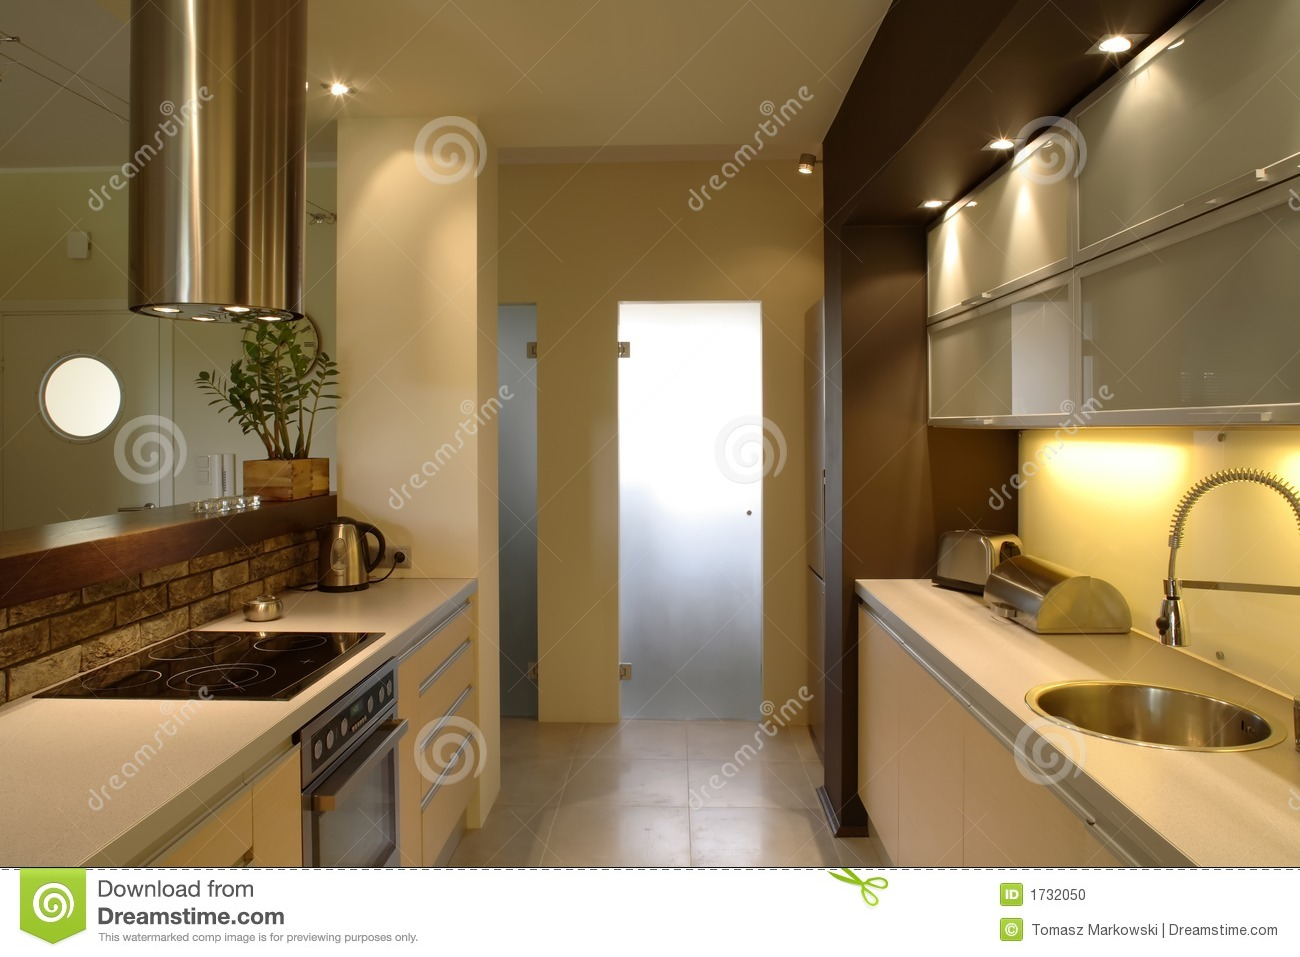 Cuisine moderne d 39 appartement photo stock image 1732050 for Cuisine moderne pour appartement